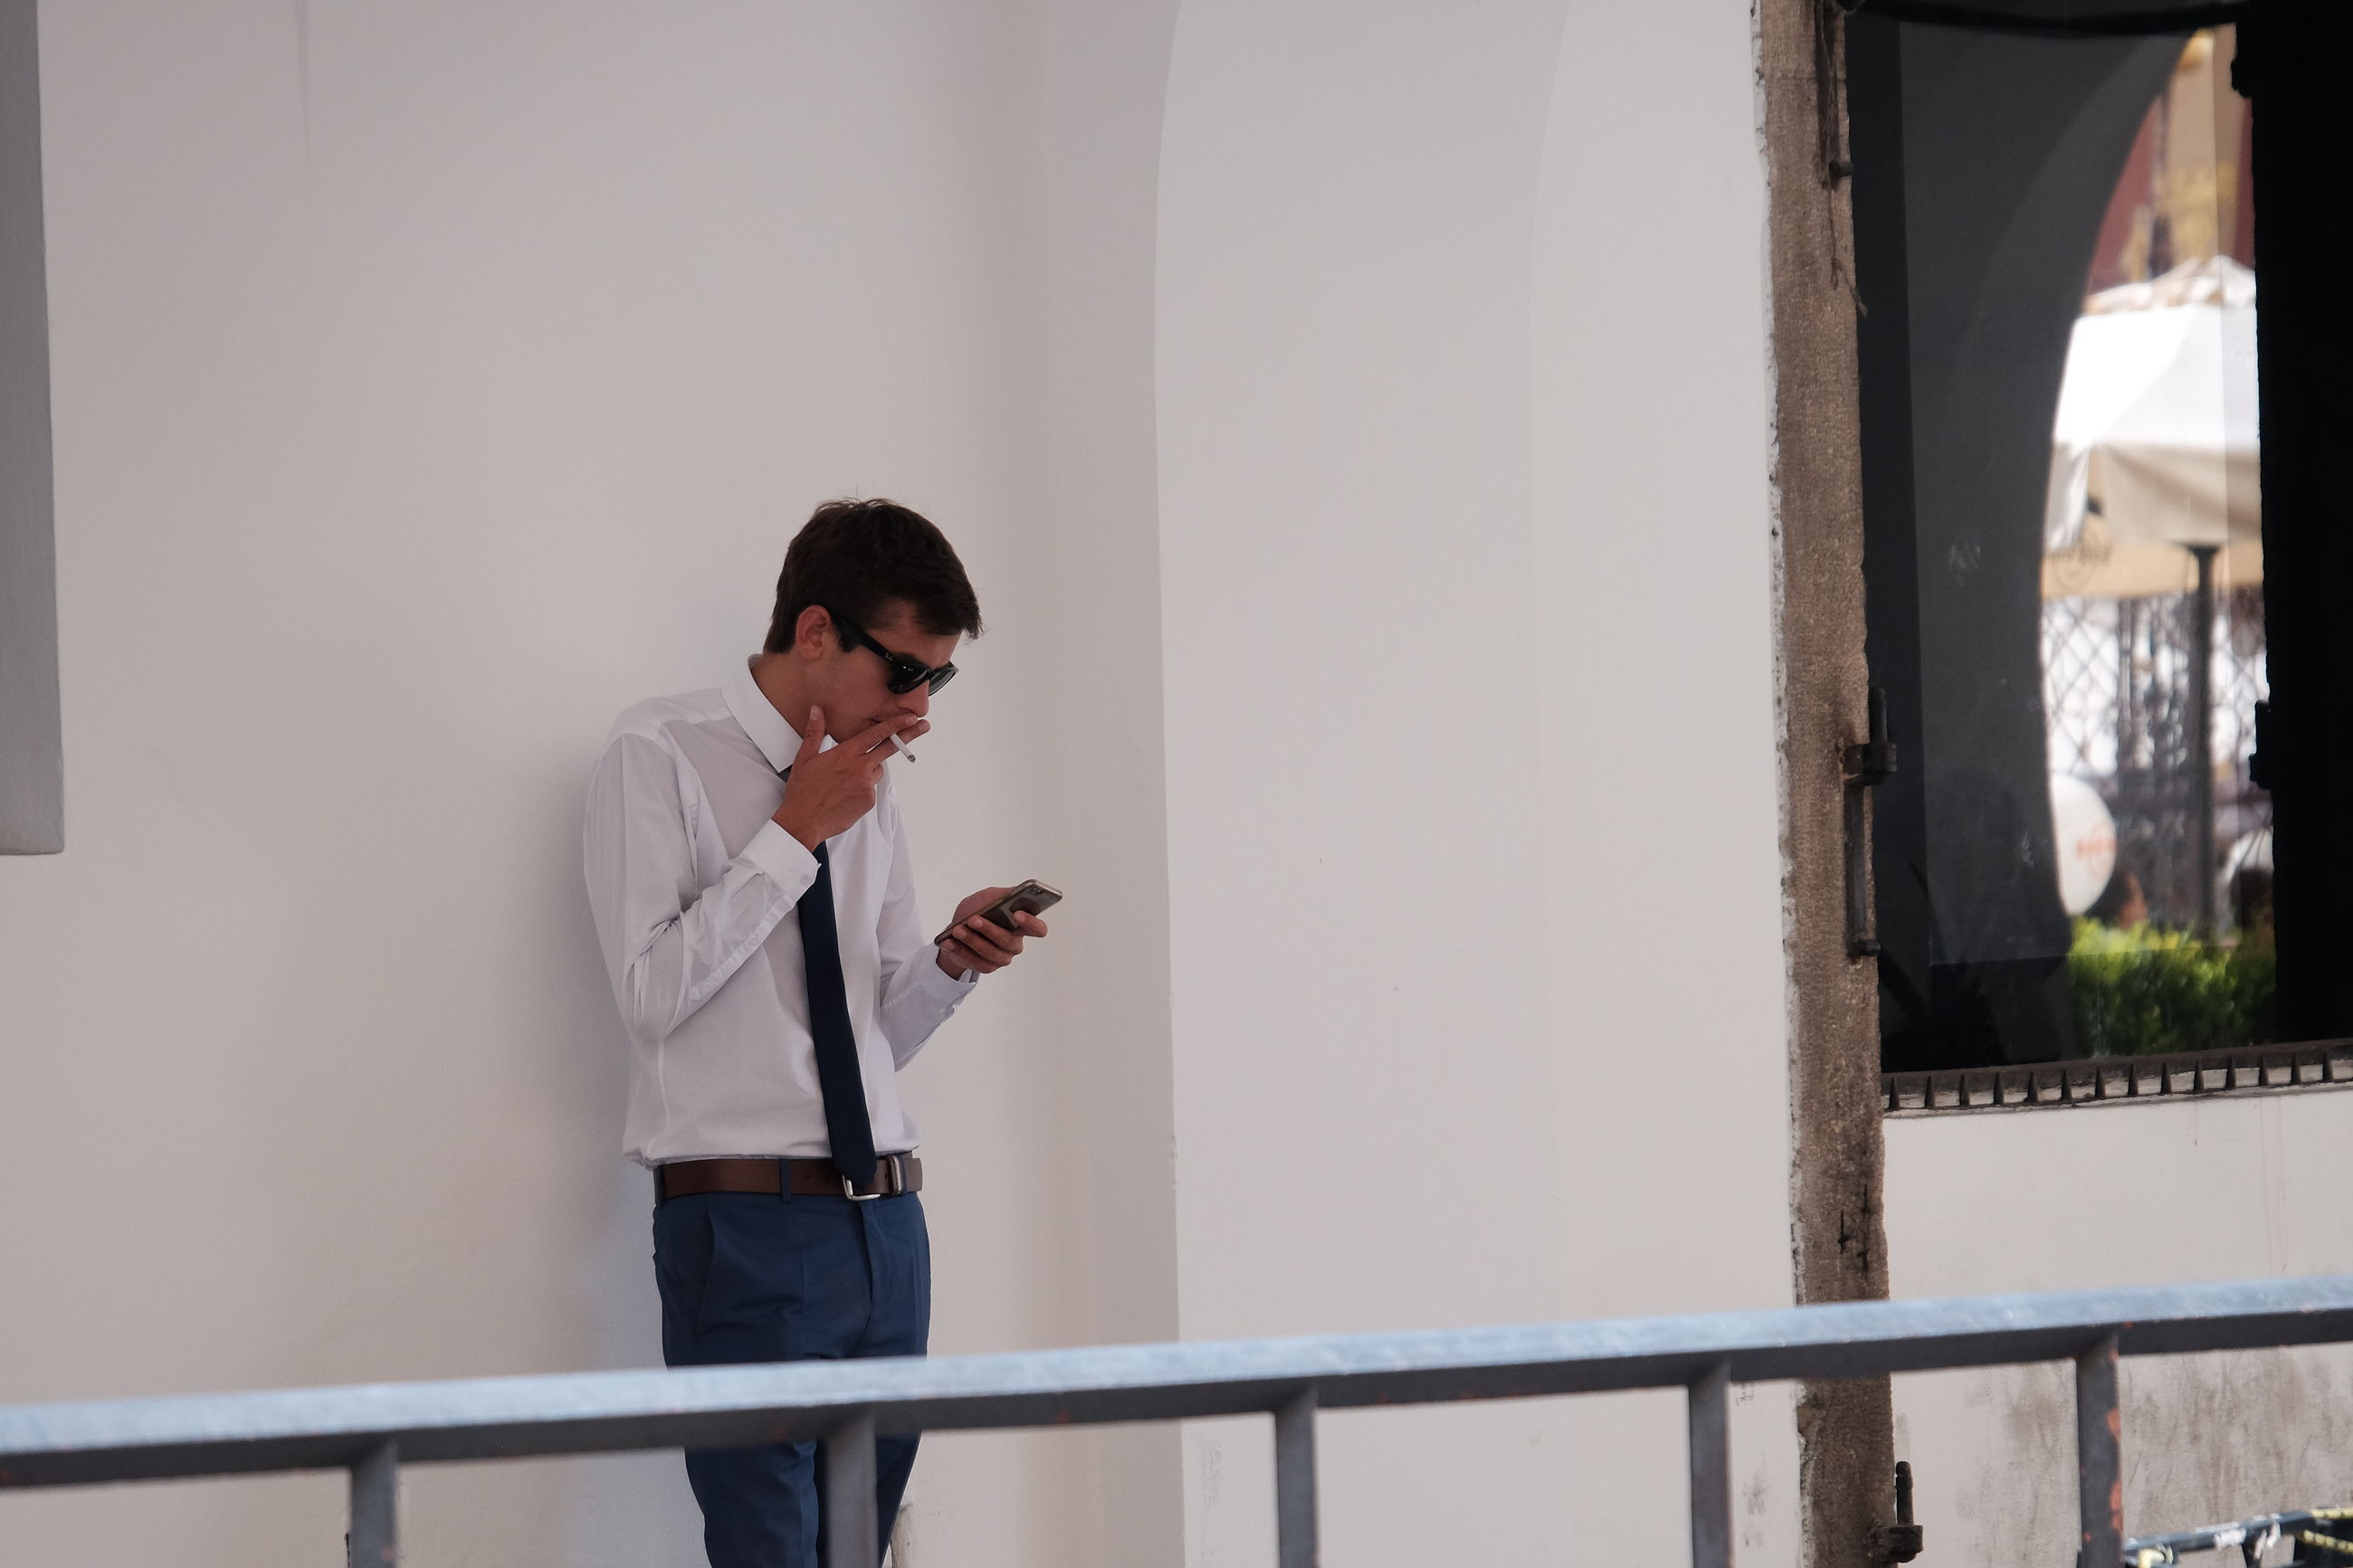 YOUNG MAN USING MOBILE PHONE WHILE STANDING ON LAPTOP